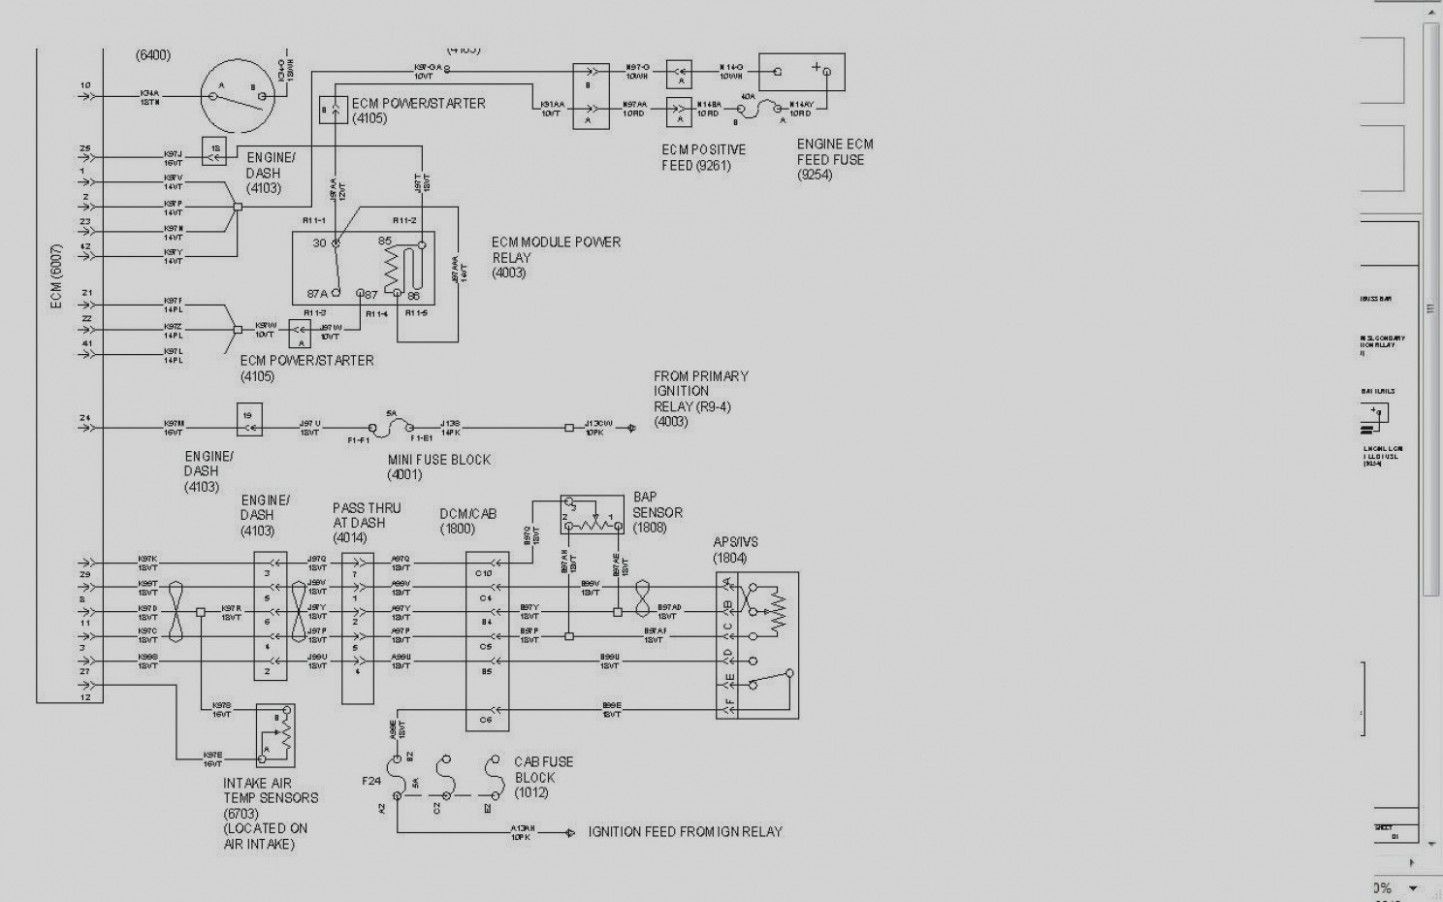 Dt7 Engine Diagram Not Working Dt7 Engine Diagram Not Working